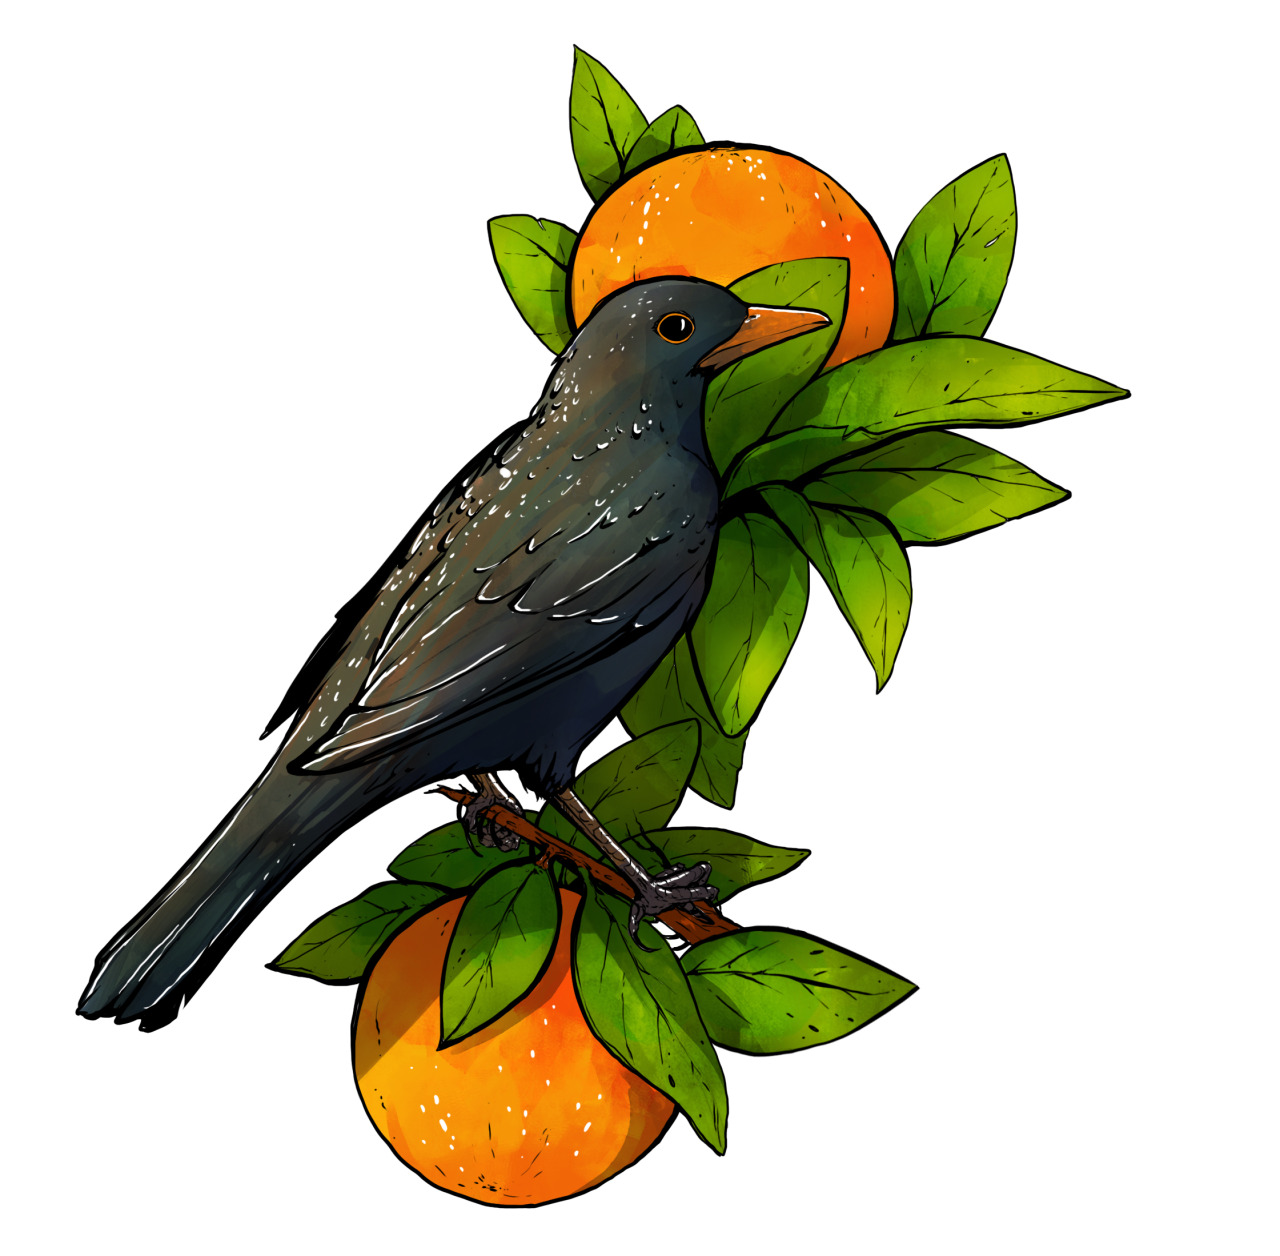 been thinking about a possible tattoo design….. blackbird + oranges